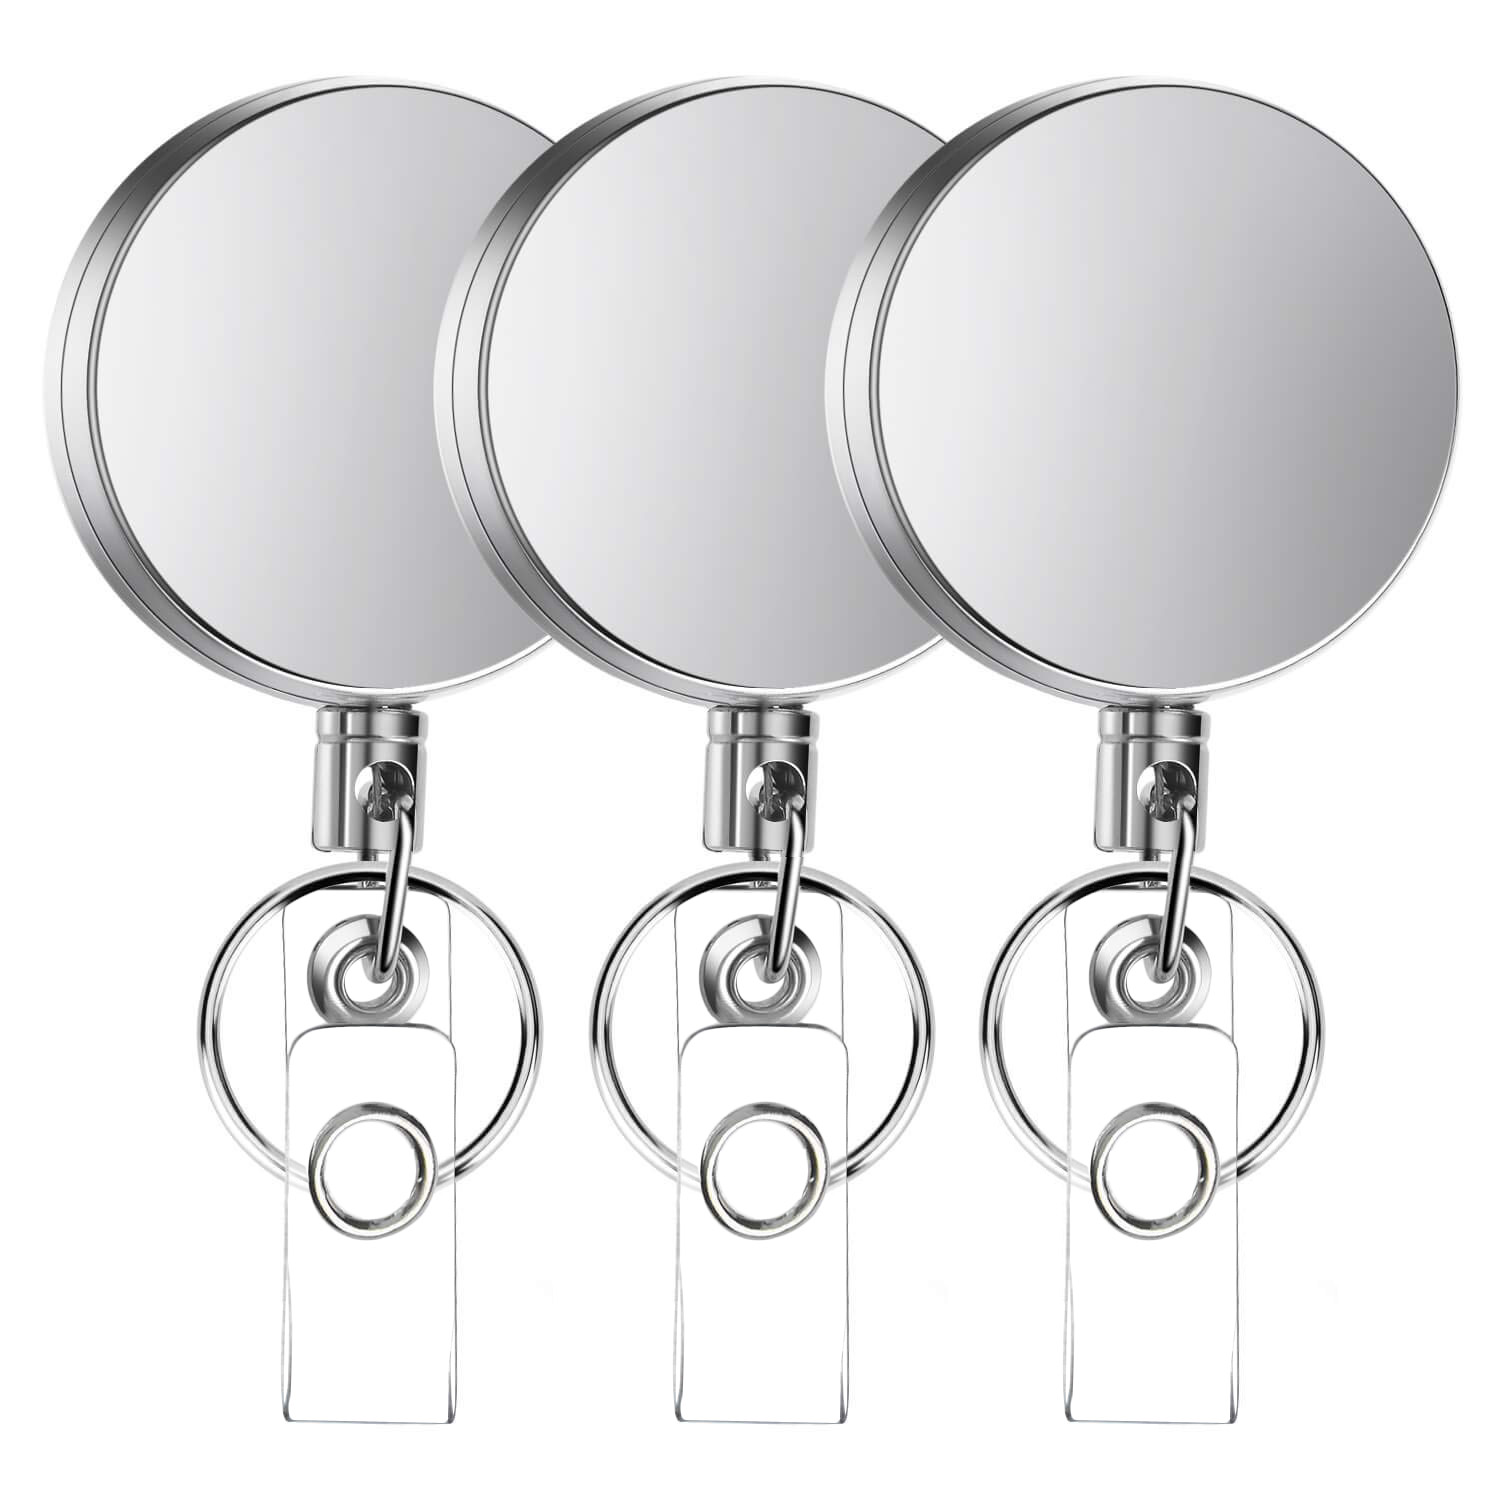 3 Pcs Metal Retractable Badge Holder Heavy Duty Badge Reels ID Holder With Key Chain Reinforced ID Strap Belt Clip